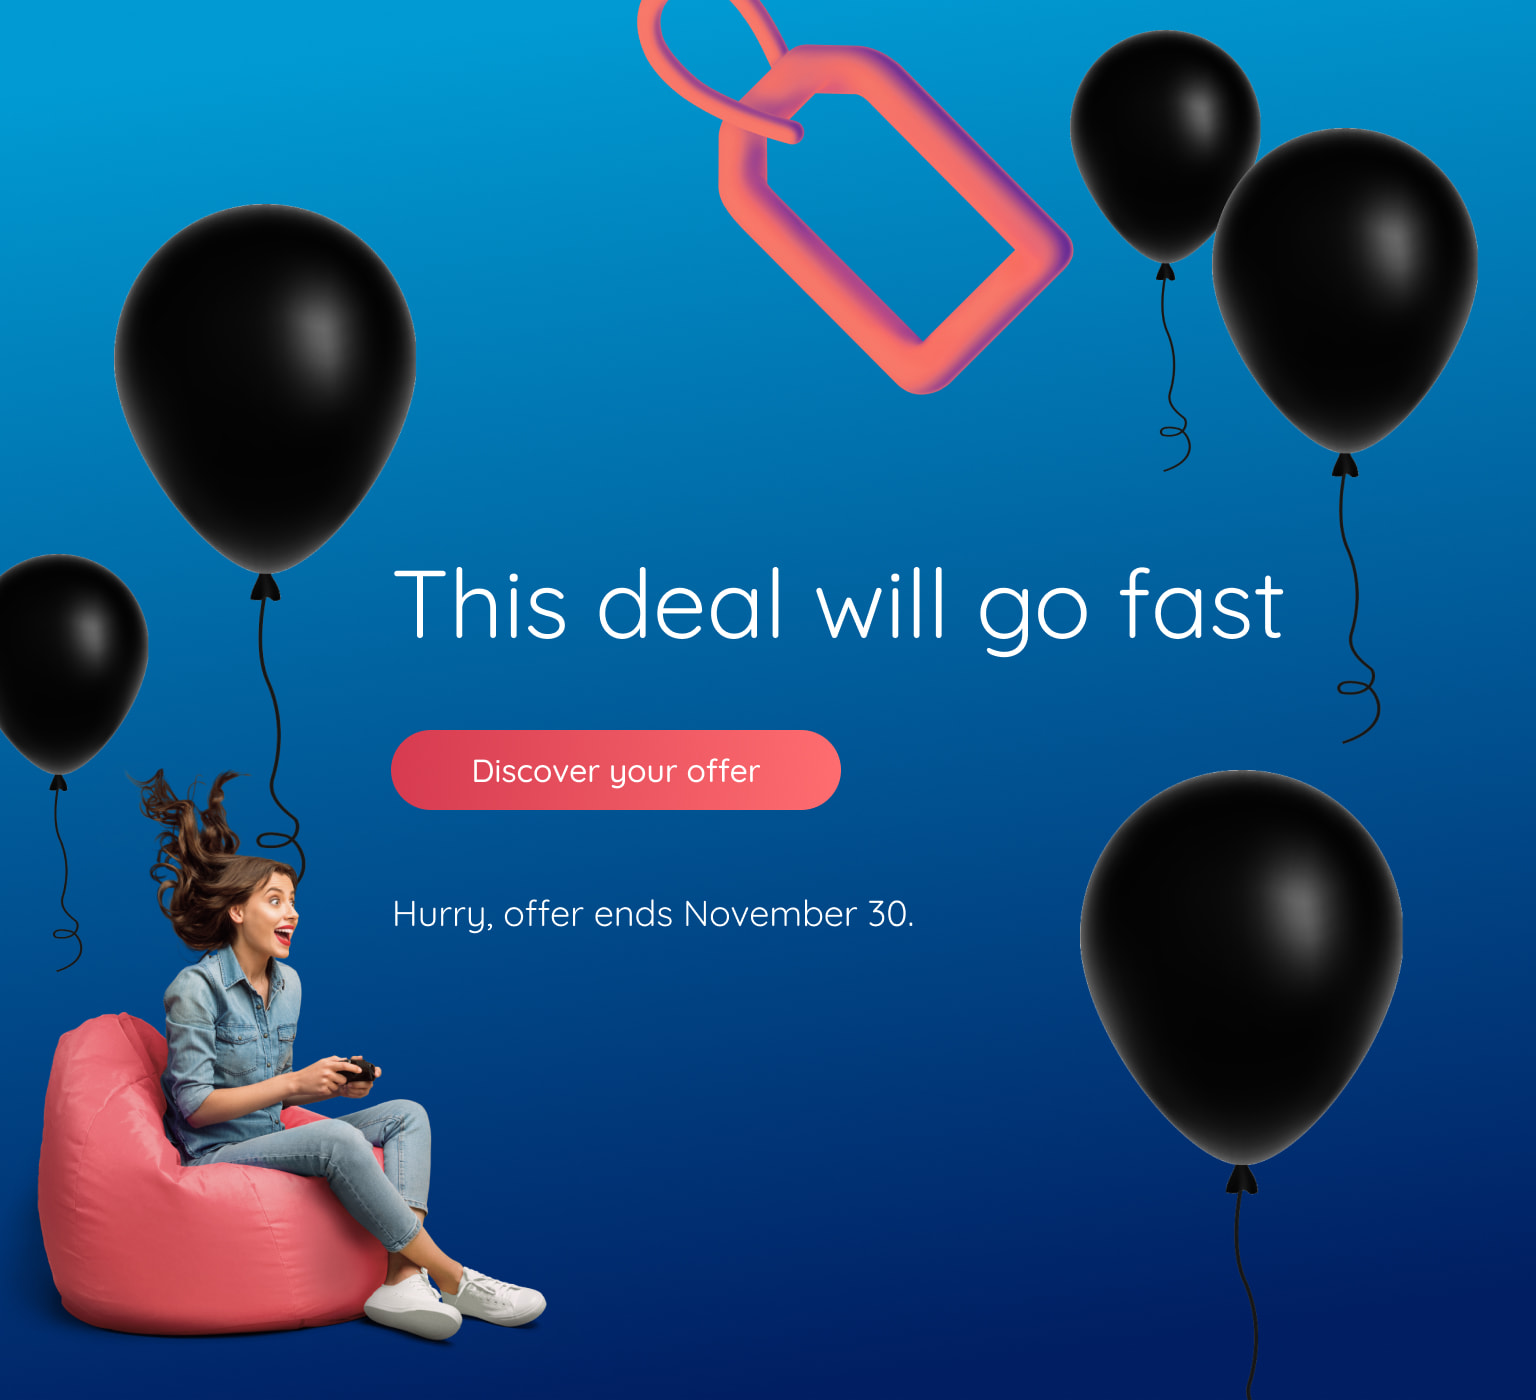 Deal of the decade Get guaranteed savings for 10 years on our fastest Internet, and more.  Hurry, offer only available until November 30.